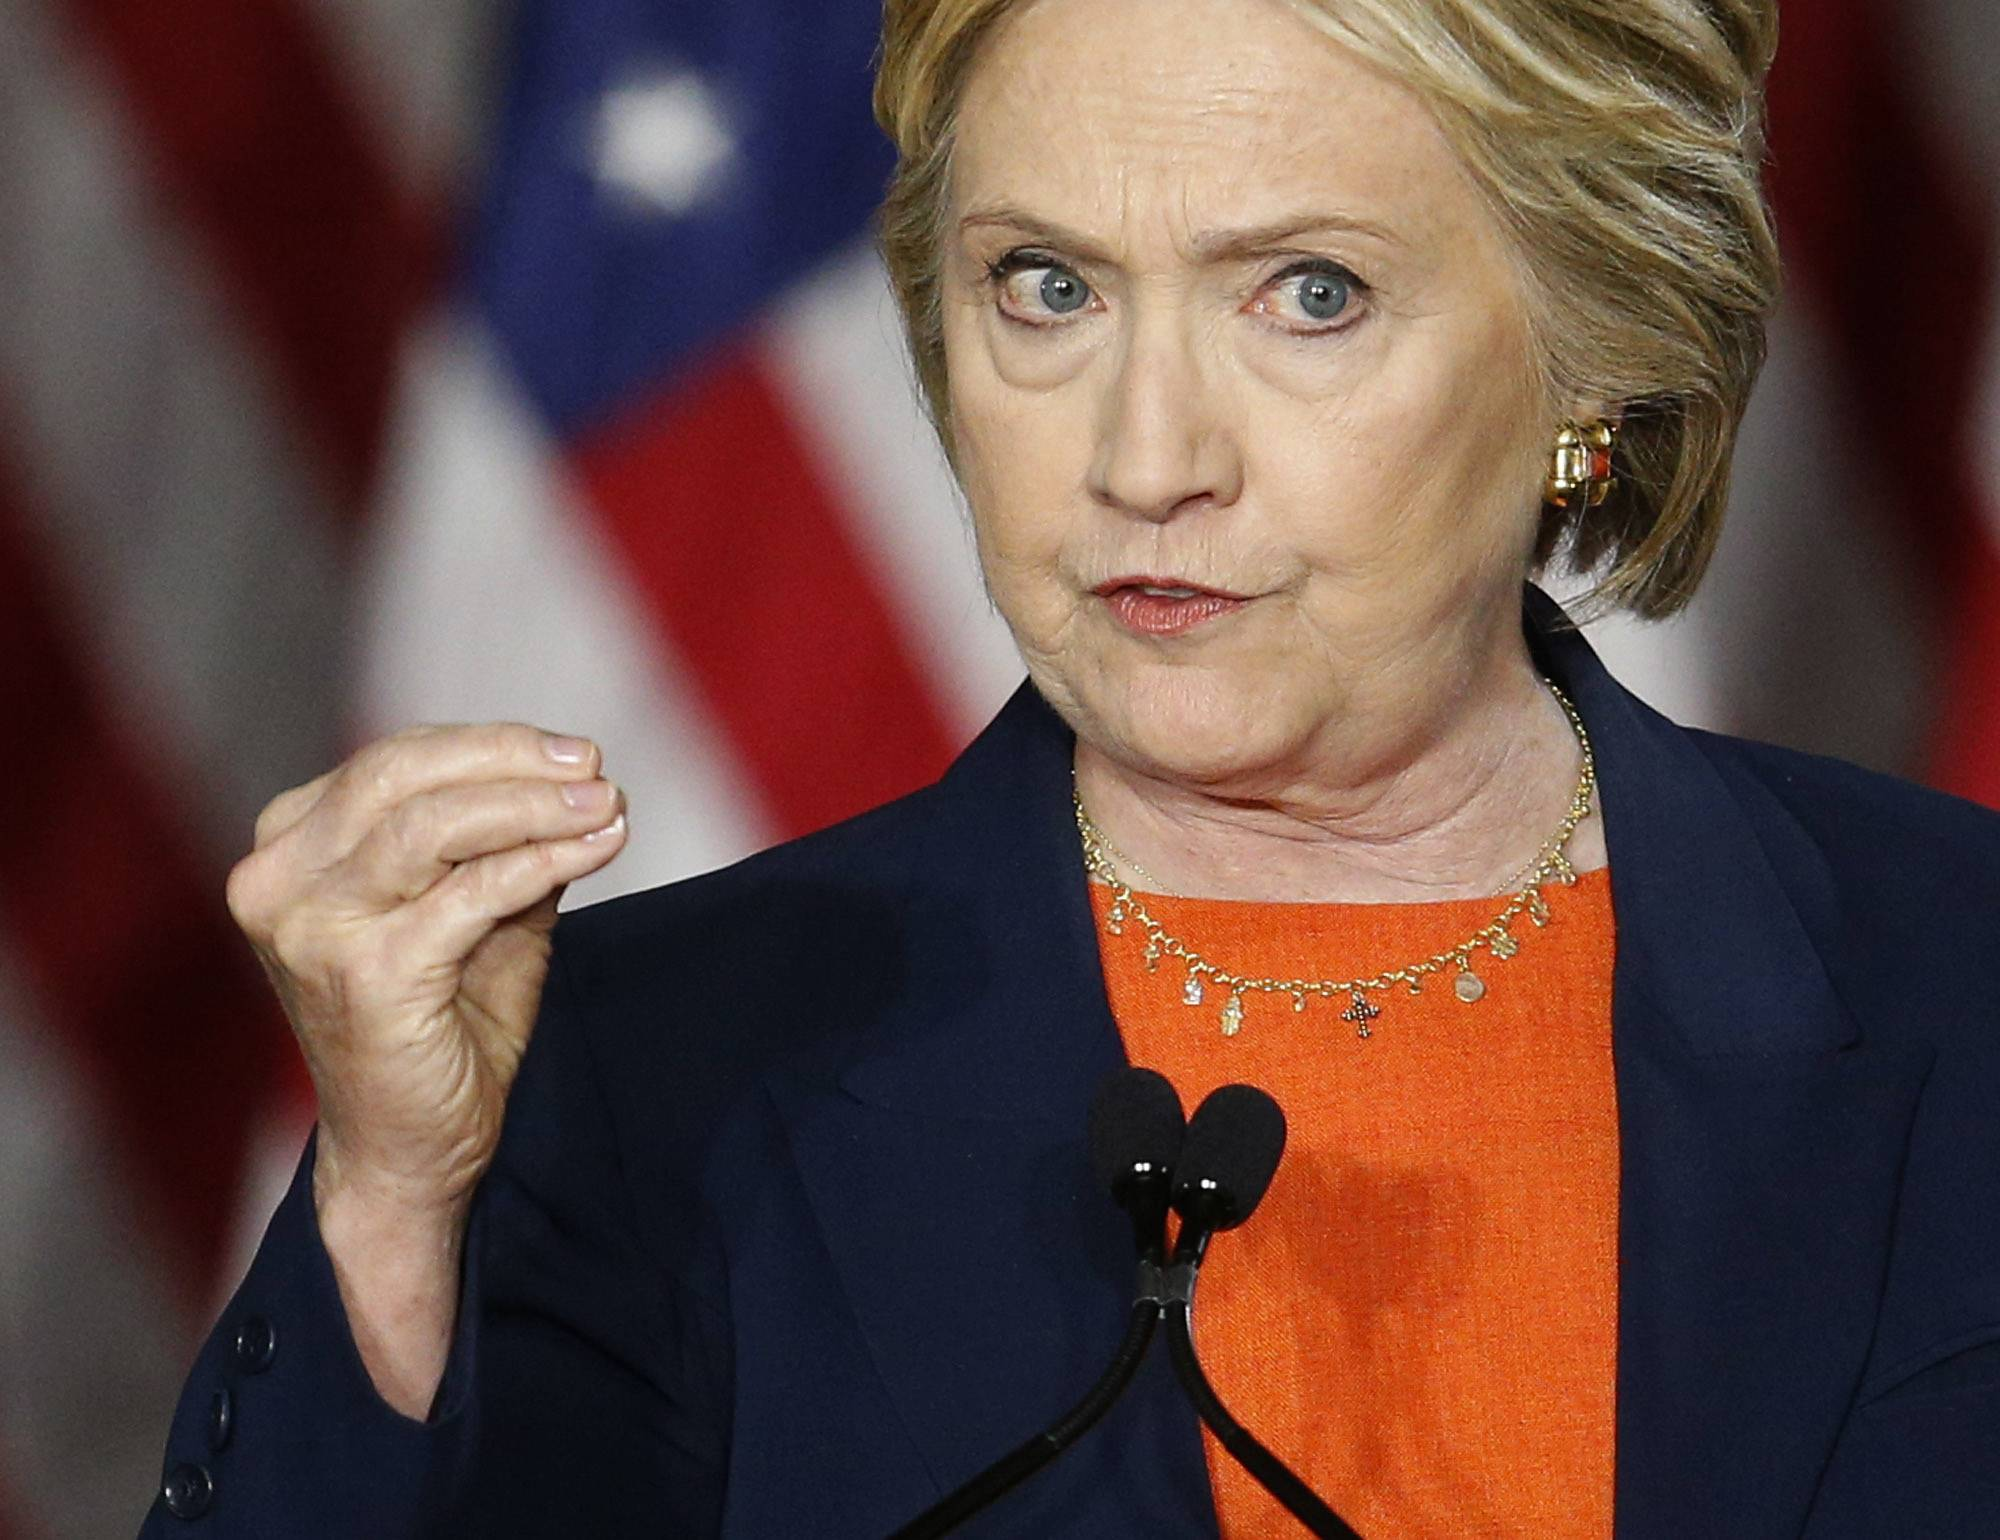 Democratic presidential candidate Hillary Clinton gives an address on national security Thursday in San Diego, Calif.